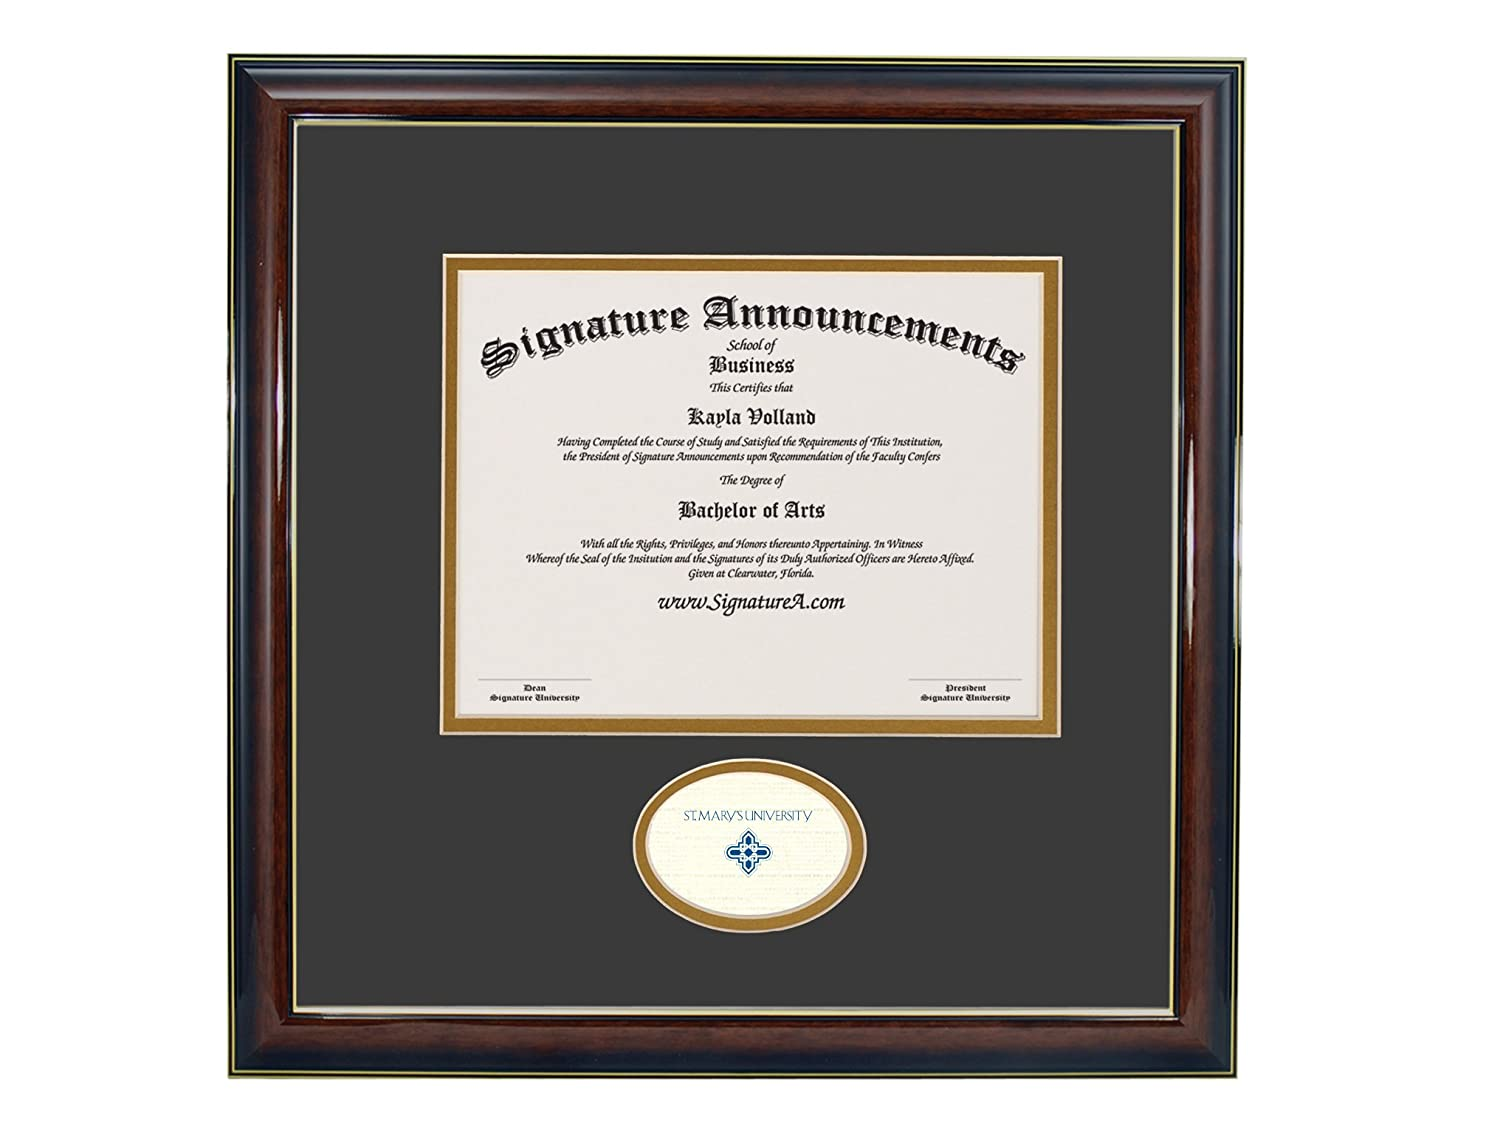 Signature Announcements St-Marys-University Sculpted Foil Seal Graduation Diploma Frame 16 x 16 Gold Accent Gloss Mahogany